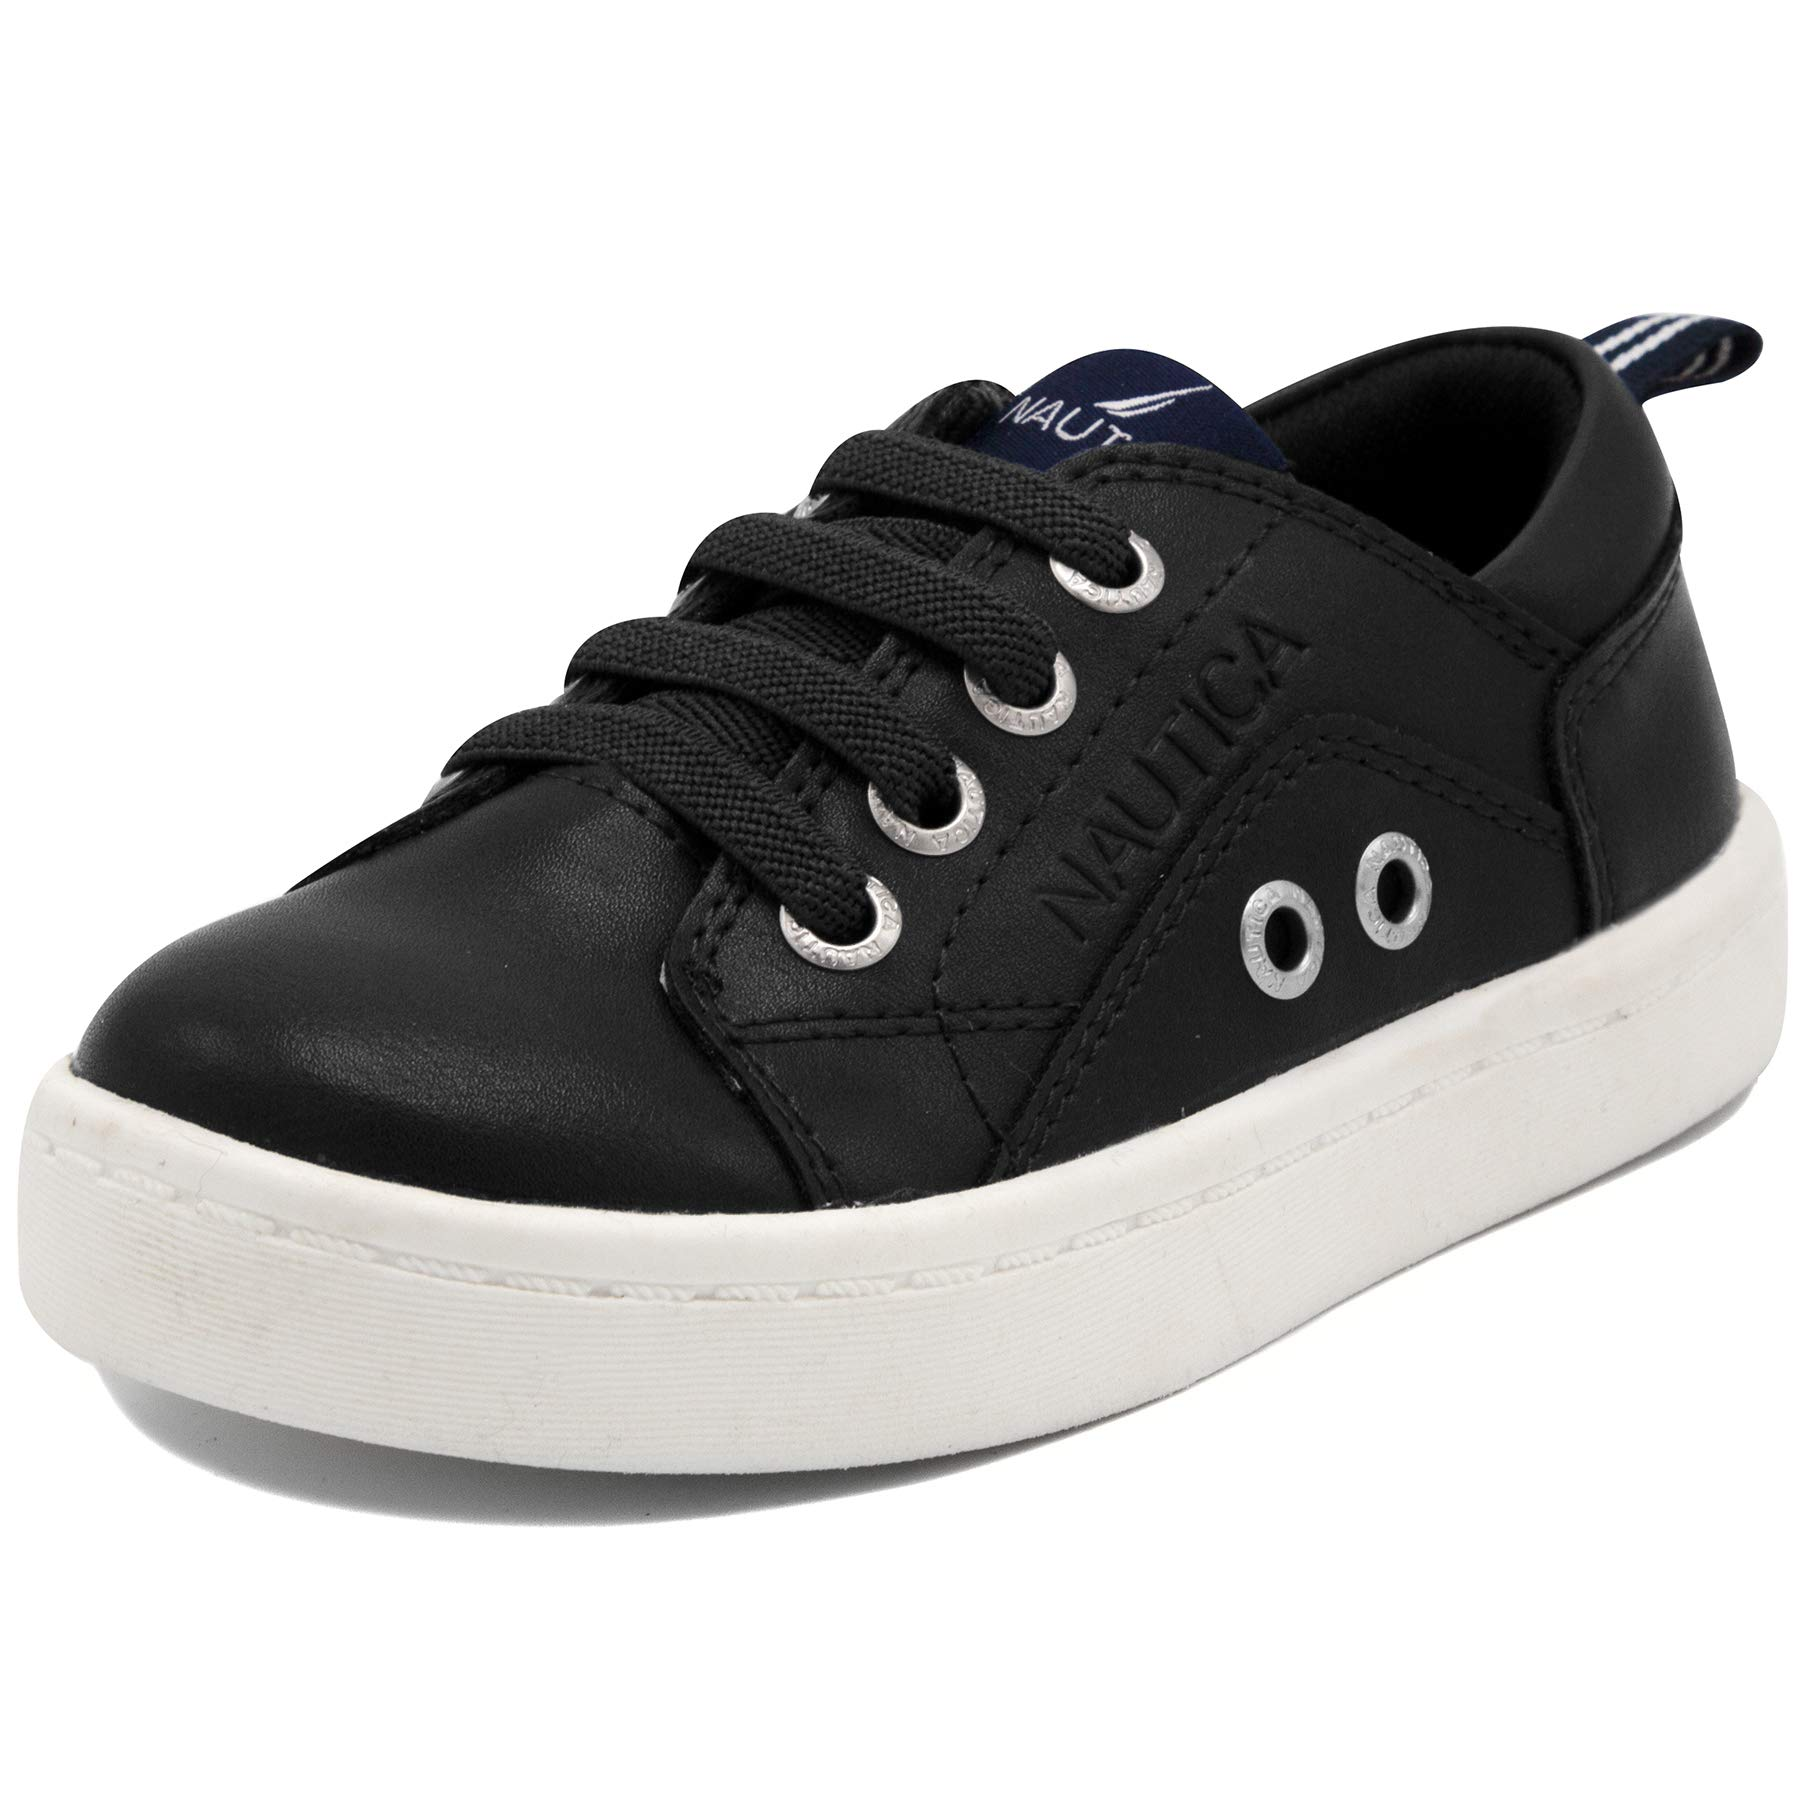 Nautica Kids Wakeby Toddler Shoe Lace Up Fashion Sneaker-Wakeby-Black-10